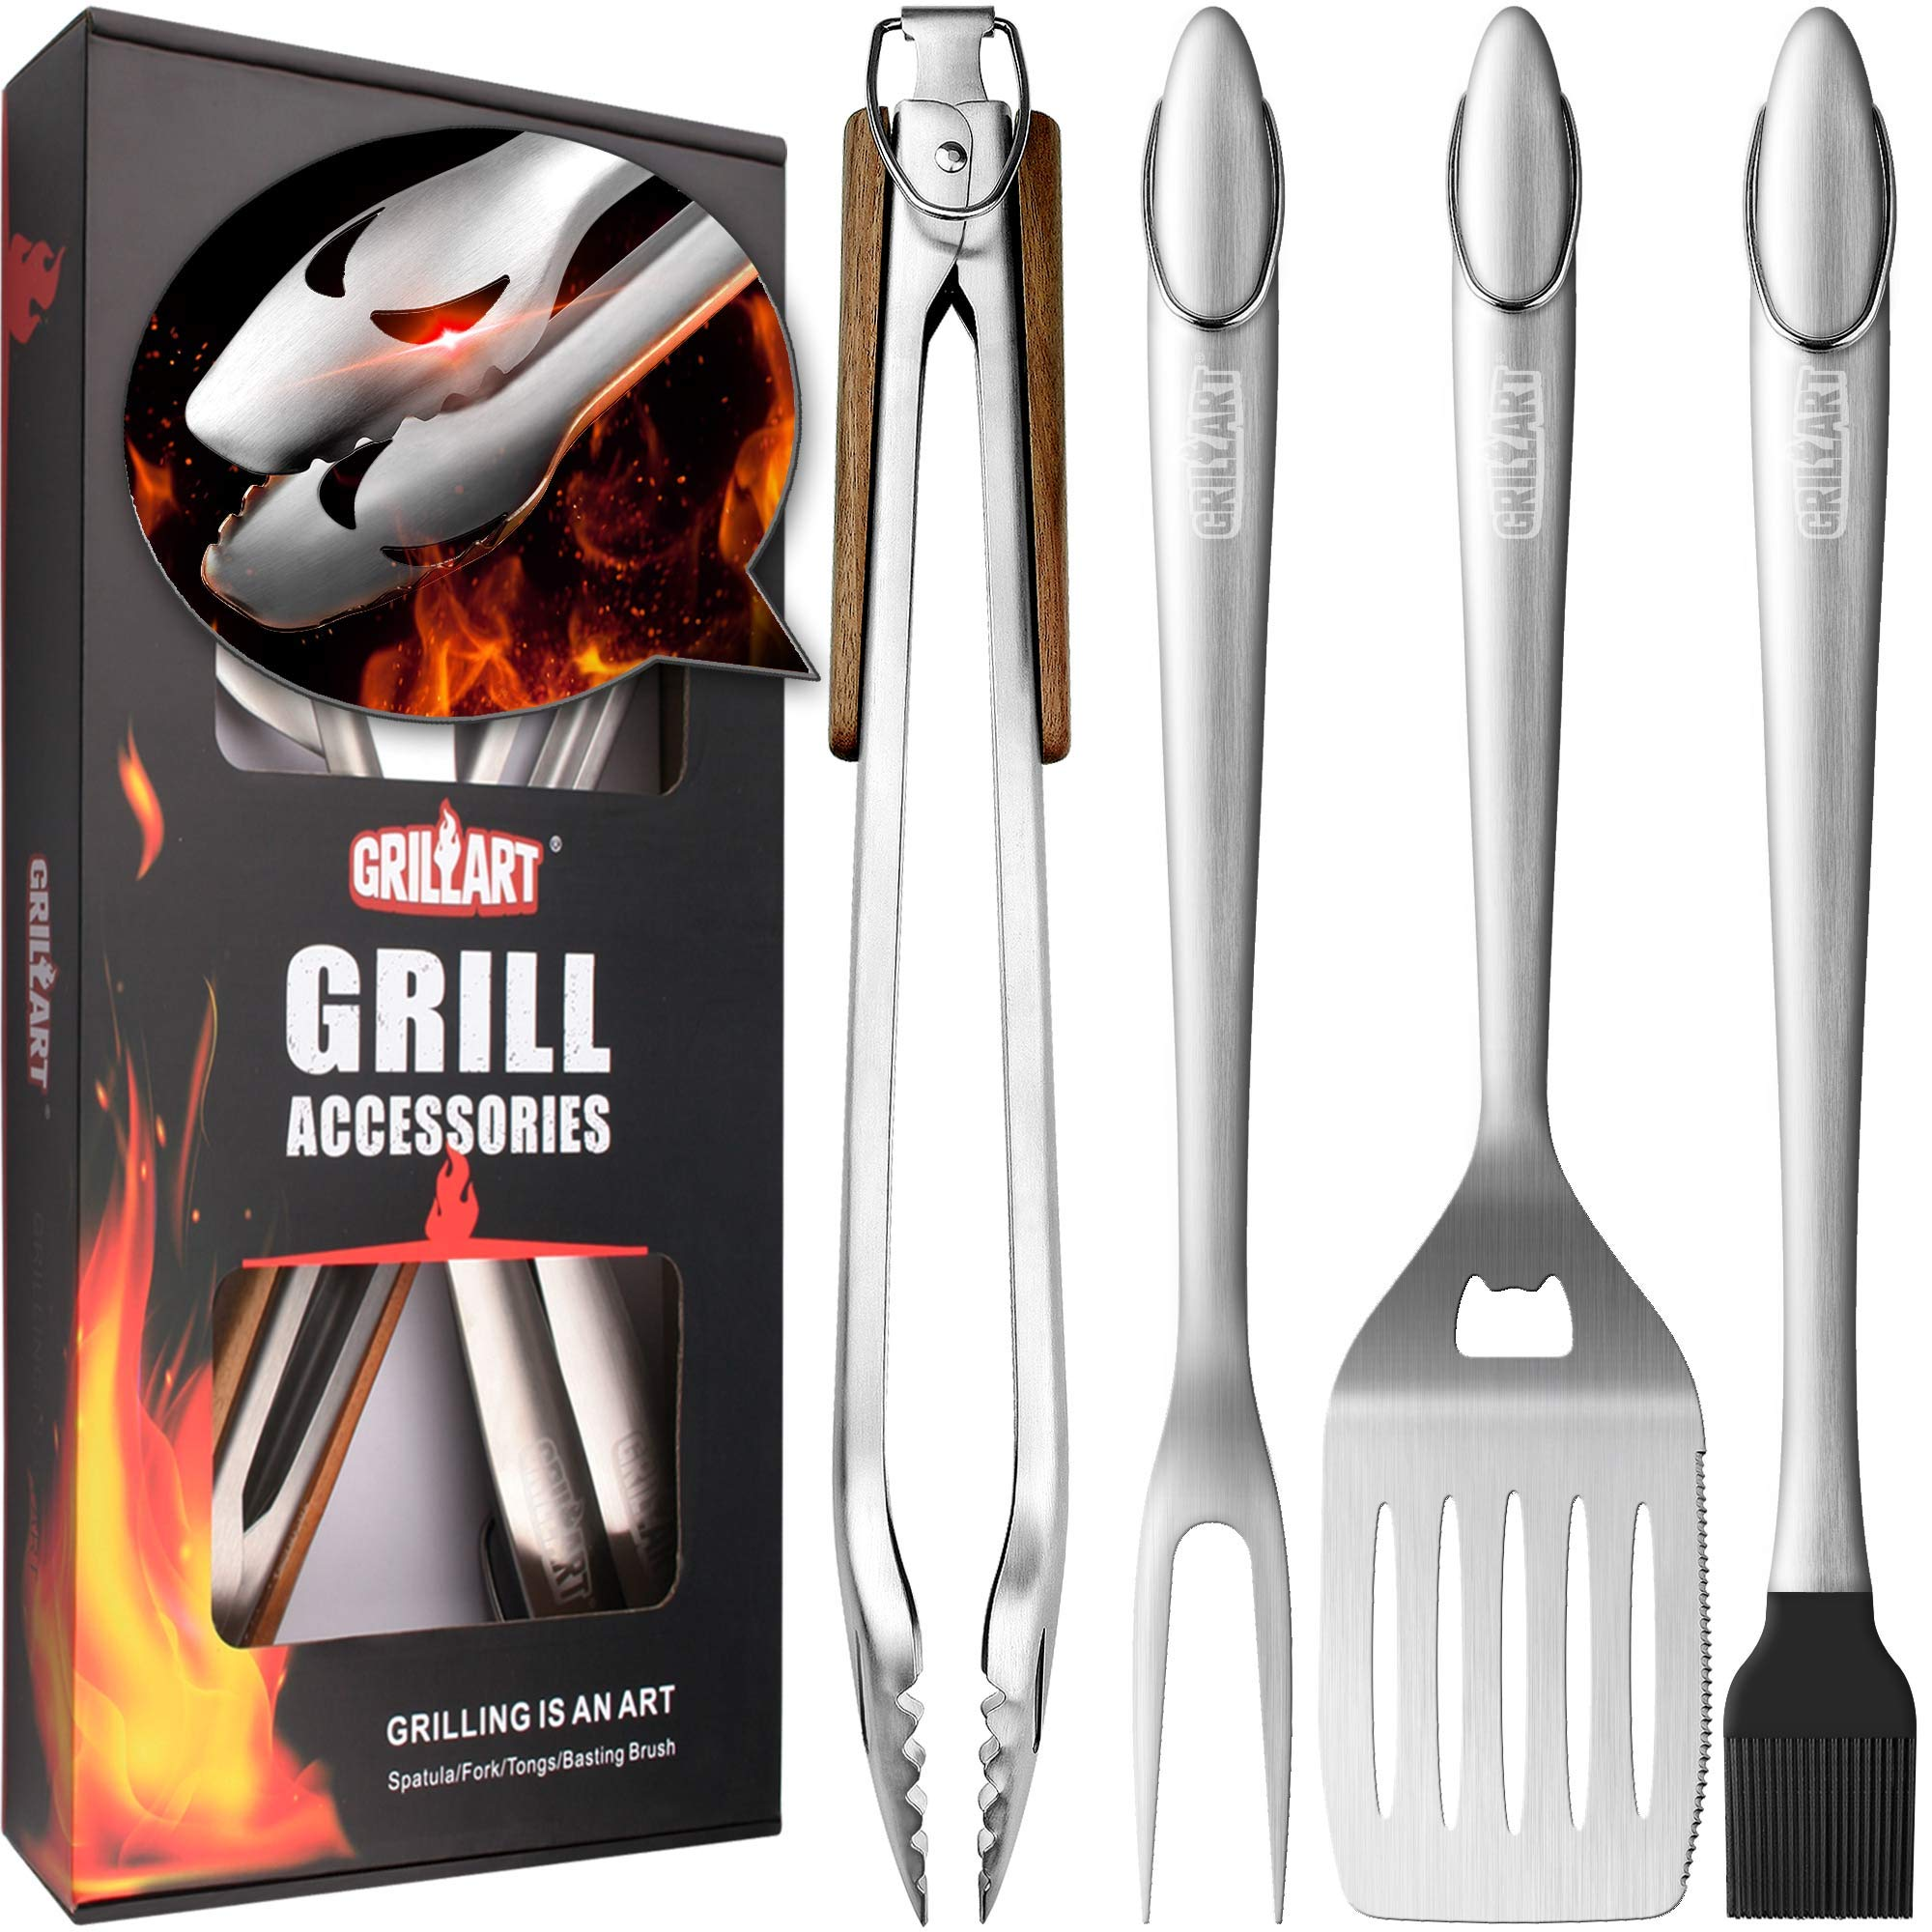 GRILLART Heavy Duty BBQ Grill Tools Set. Snake-Eyes Design Stainless Steel Grill Utensils Kit - 18'' Locking Tongs, Spatula, Fork, Basting Brush. Best Barbecue Grilling Accessories, Gift Box Package. by GRILLART